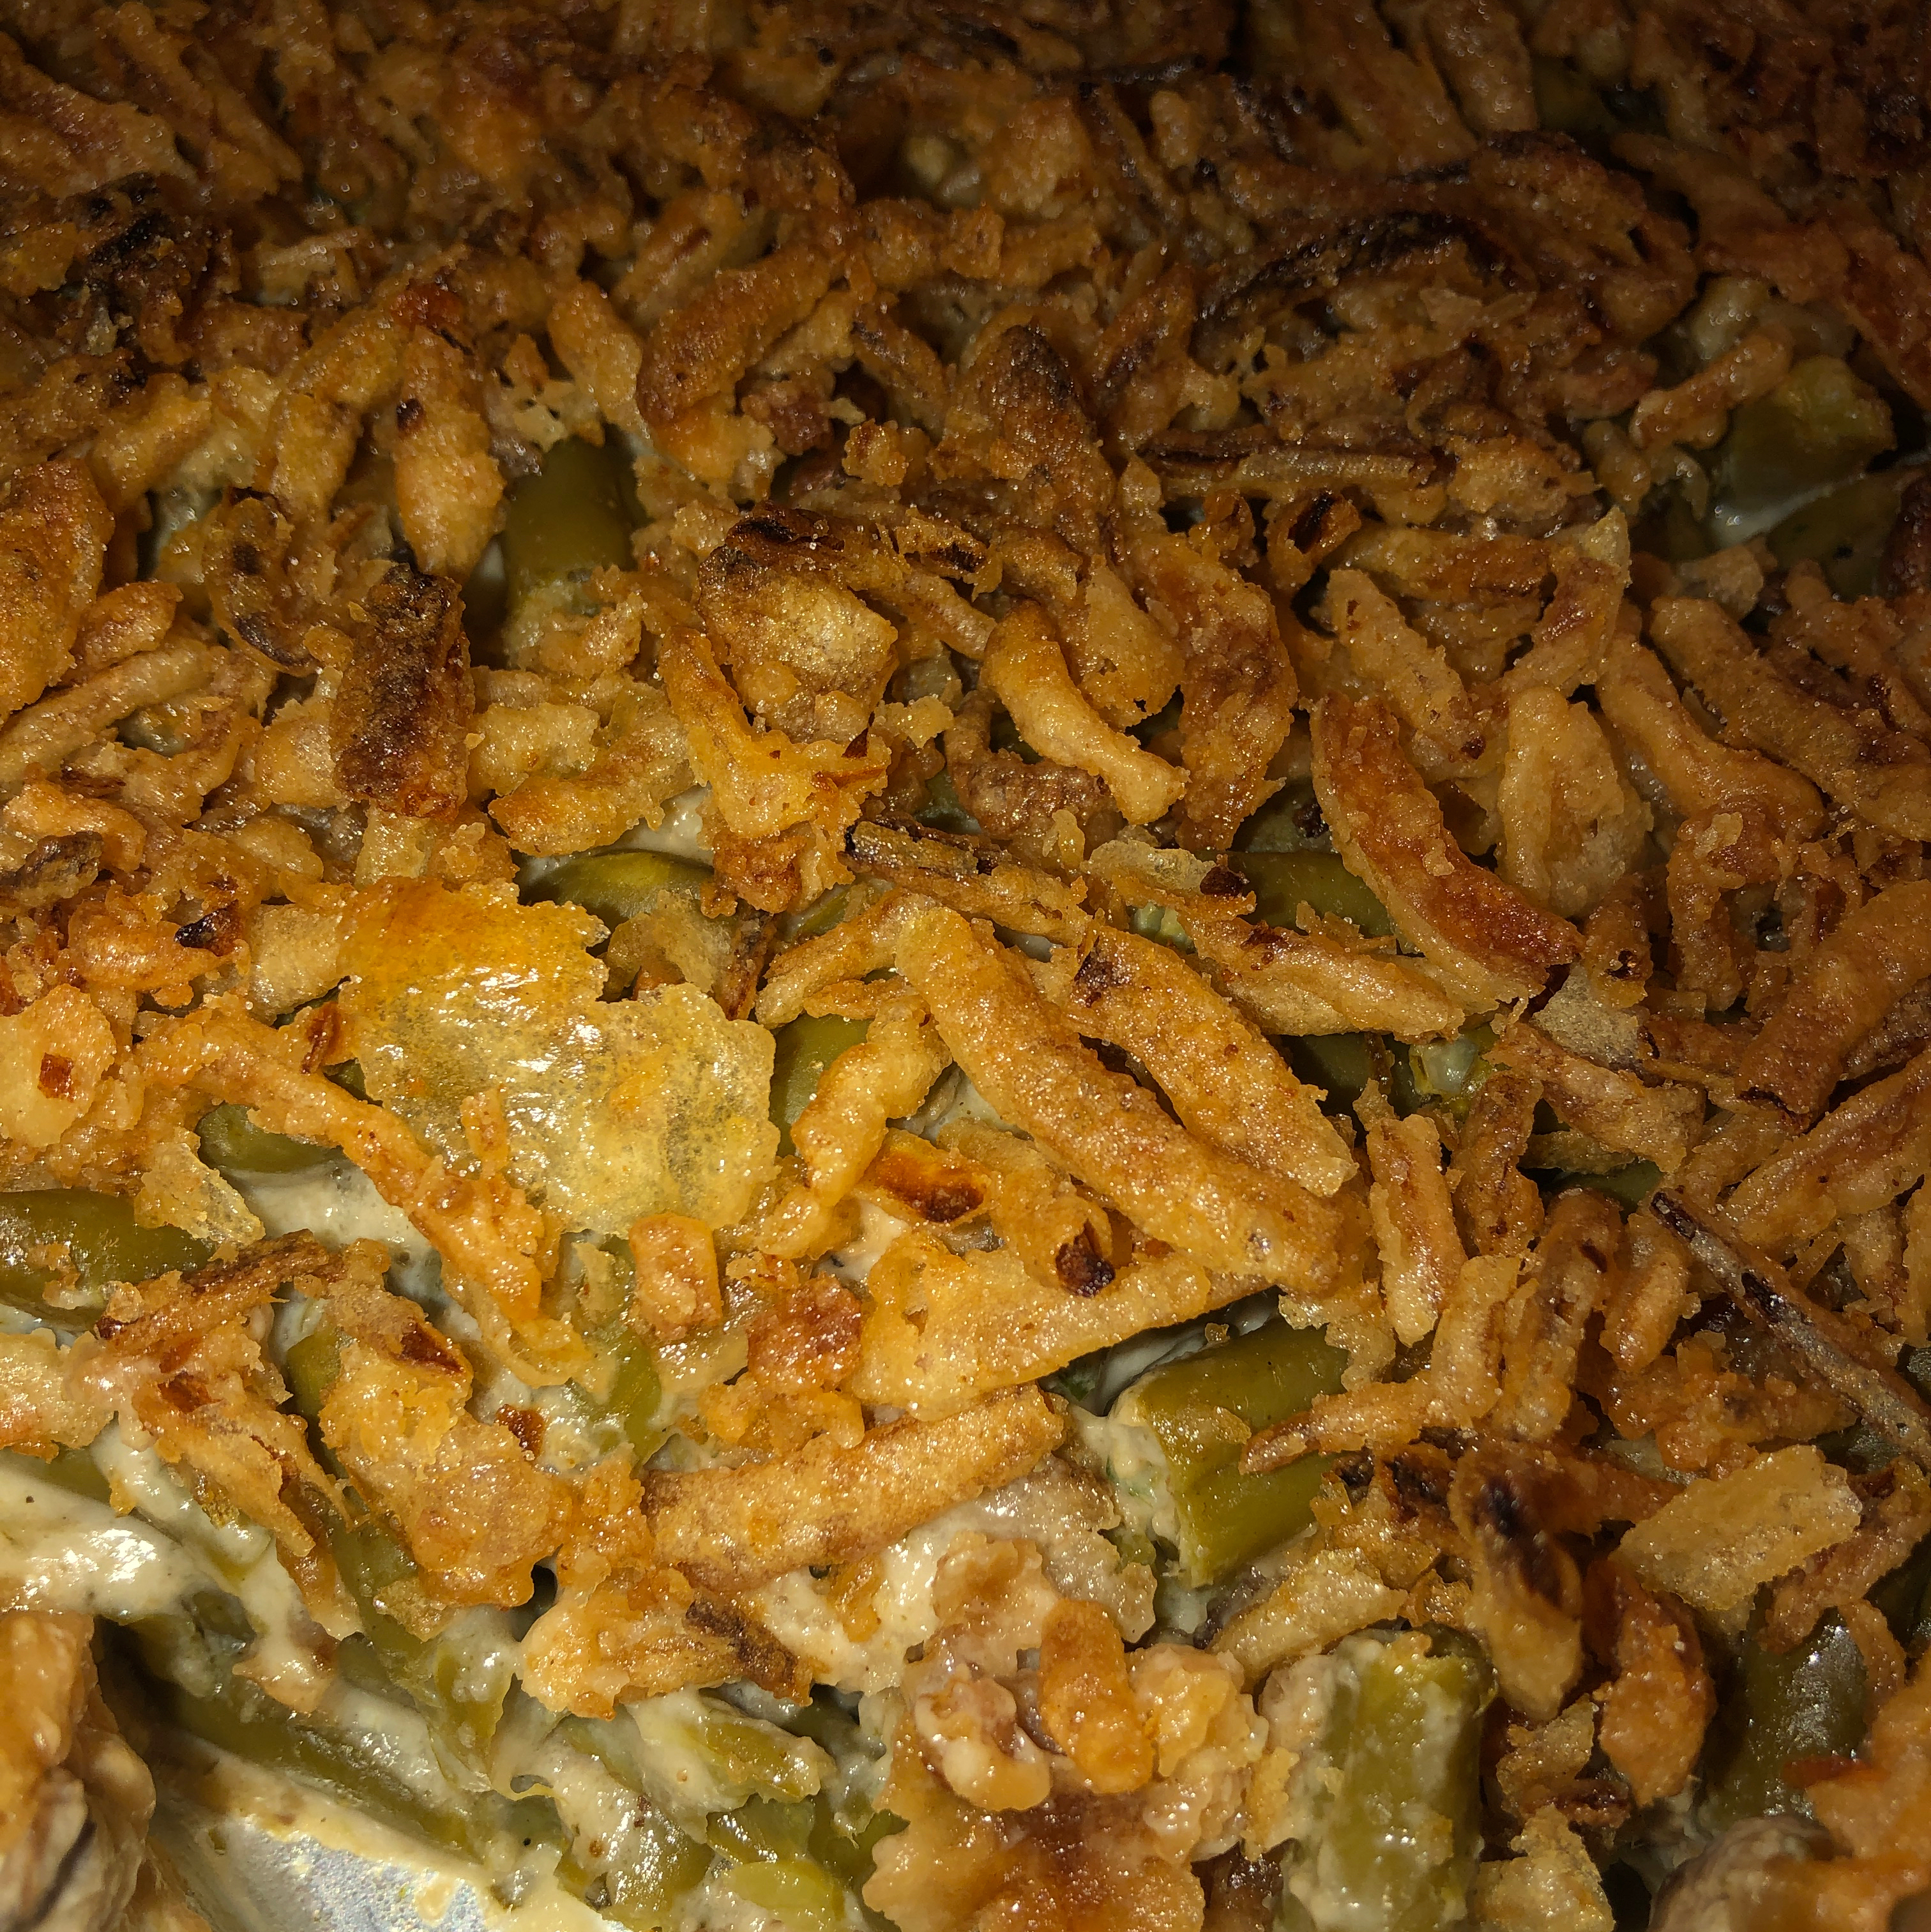 Green Bean Casserole with Canned Green Beans